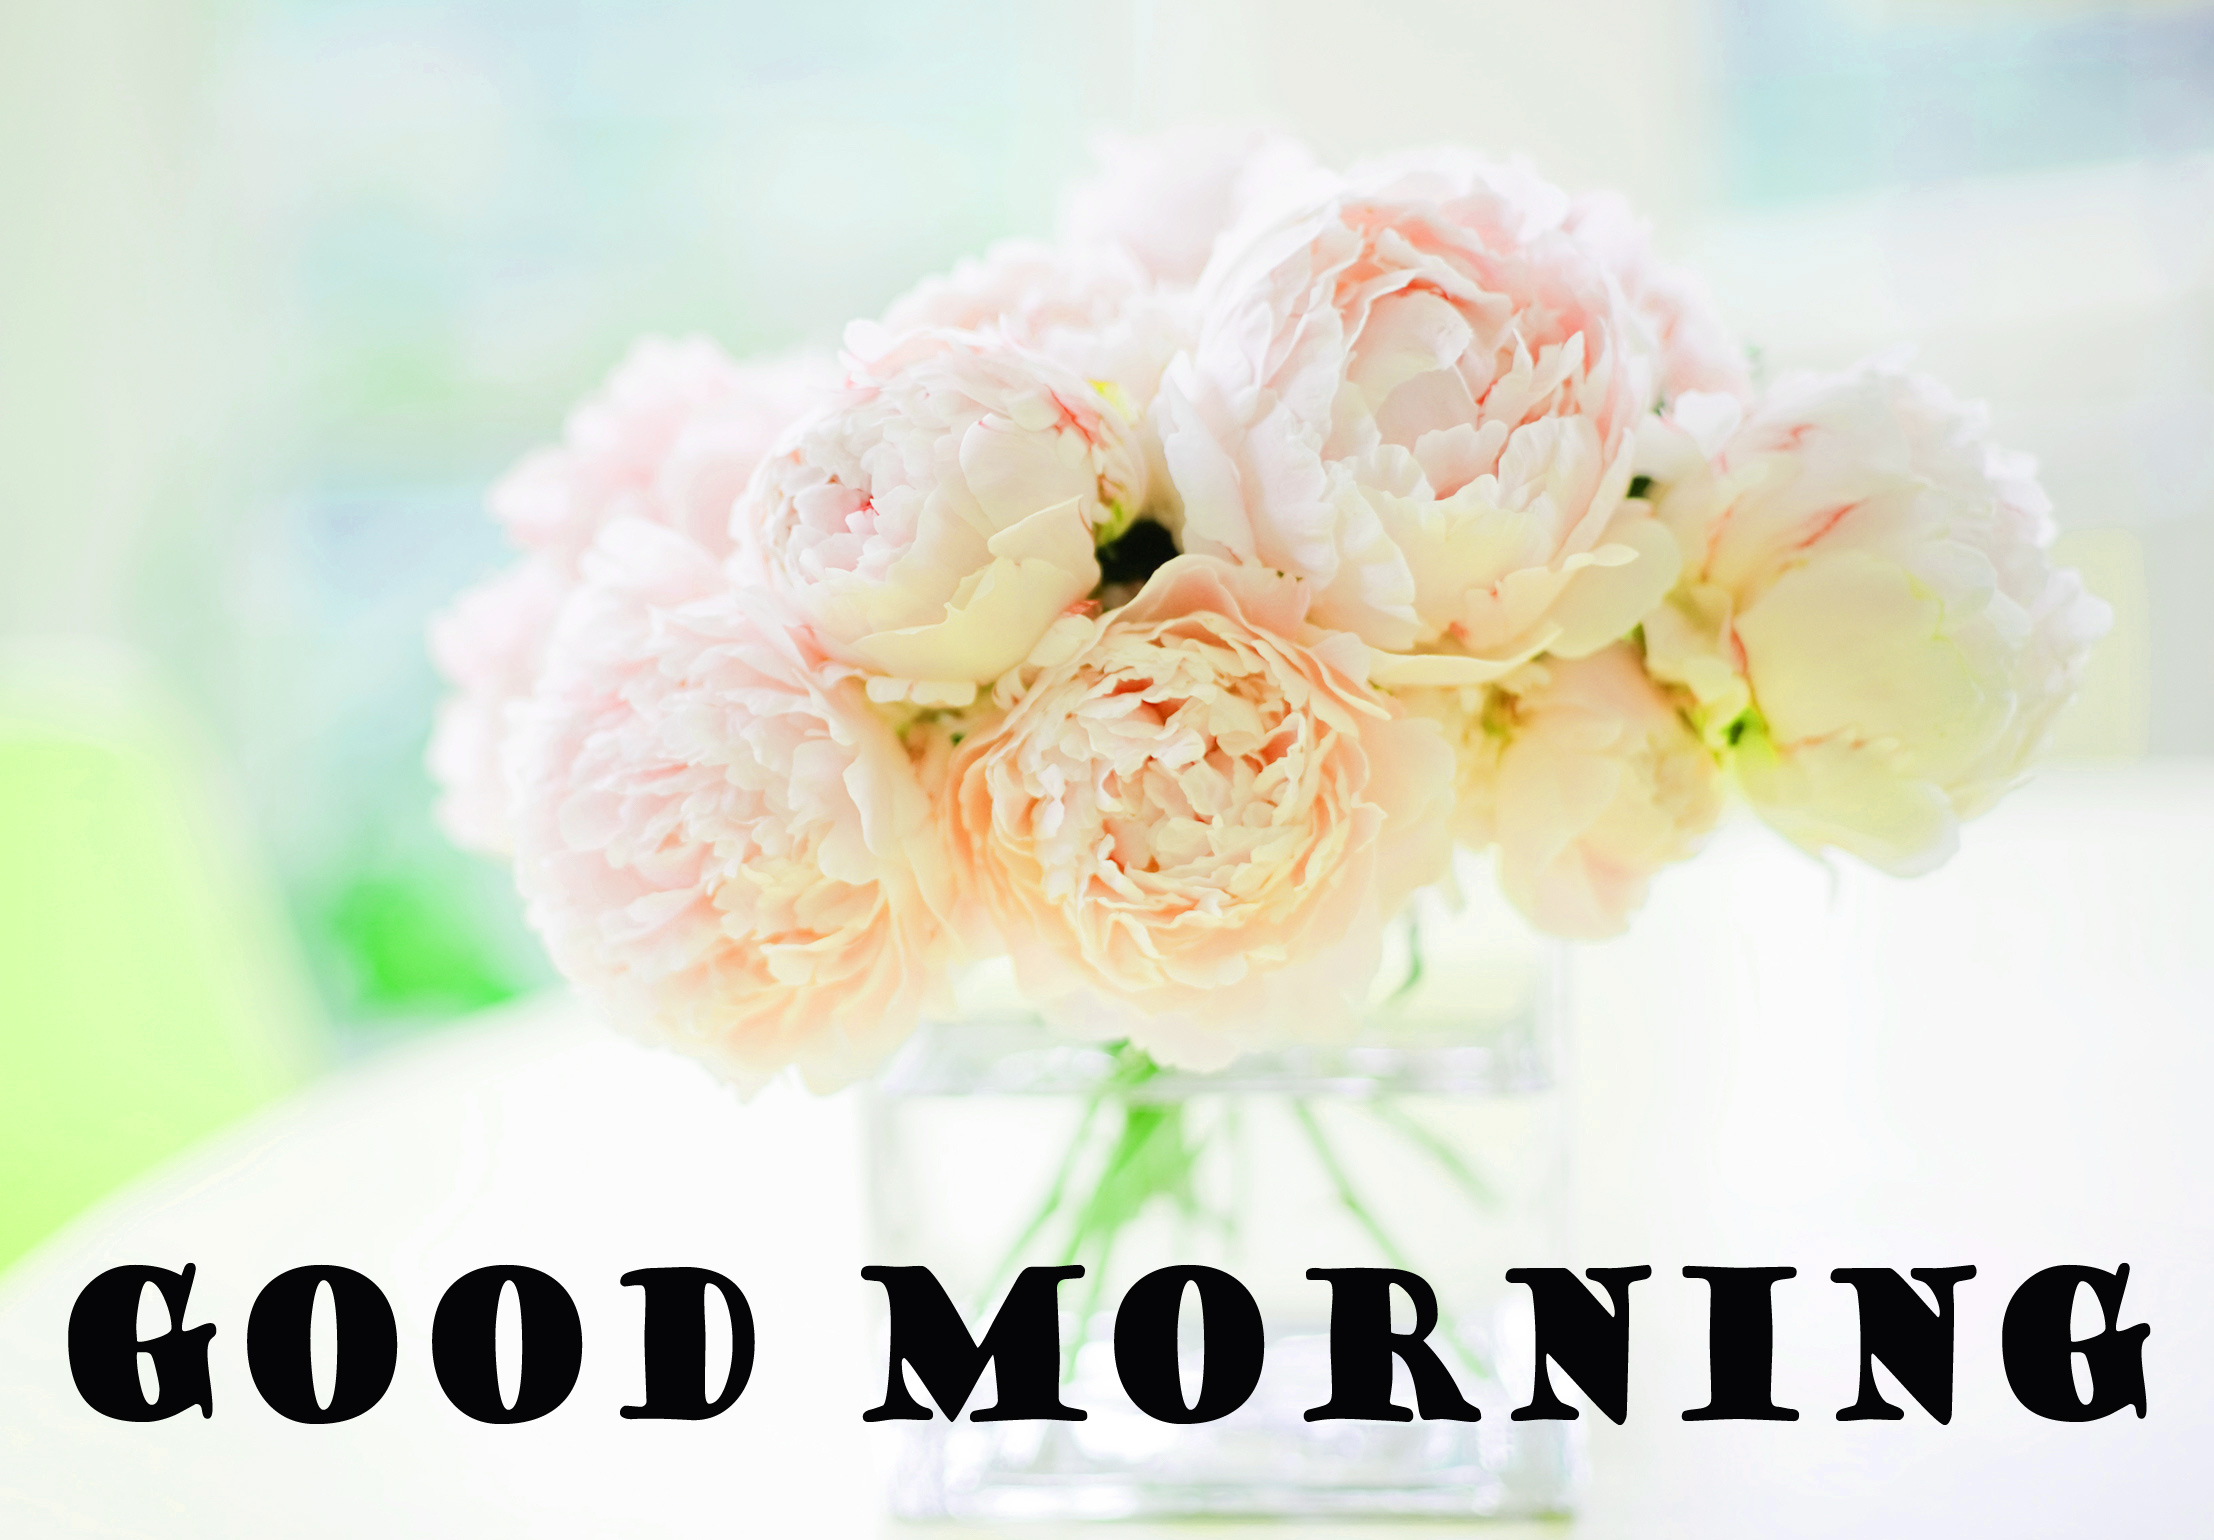 Special Wonderful Good Morning Photo Images Free HD Download